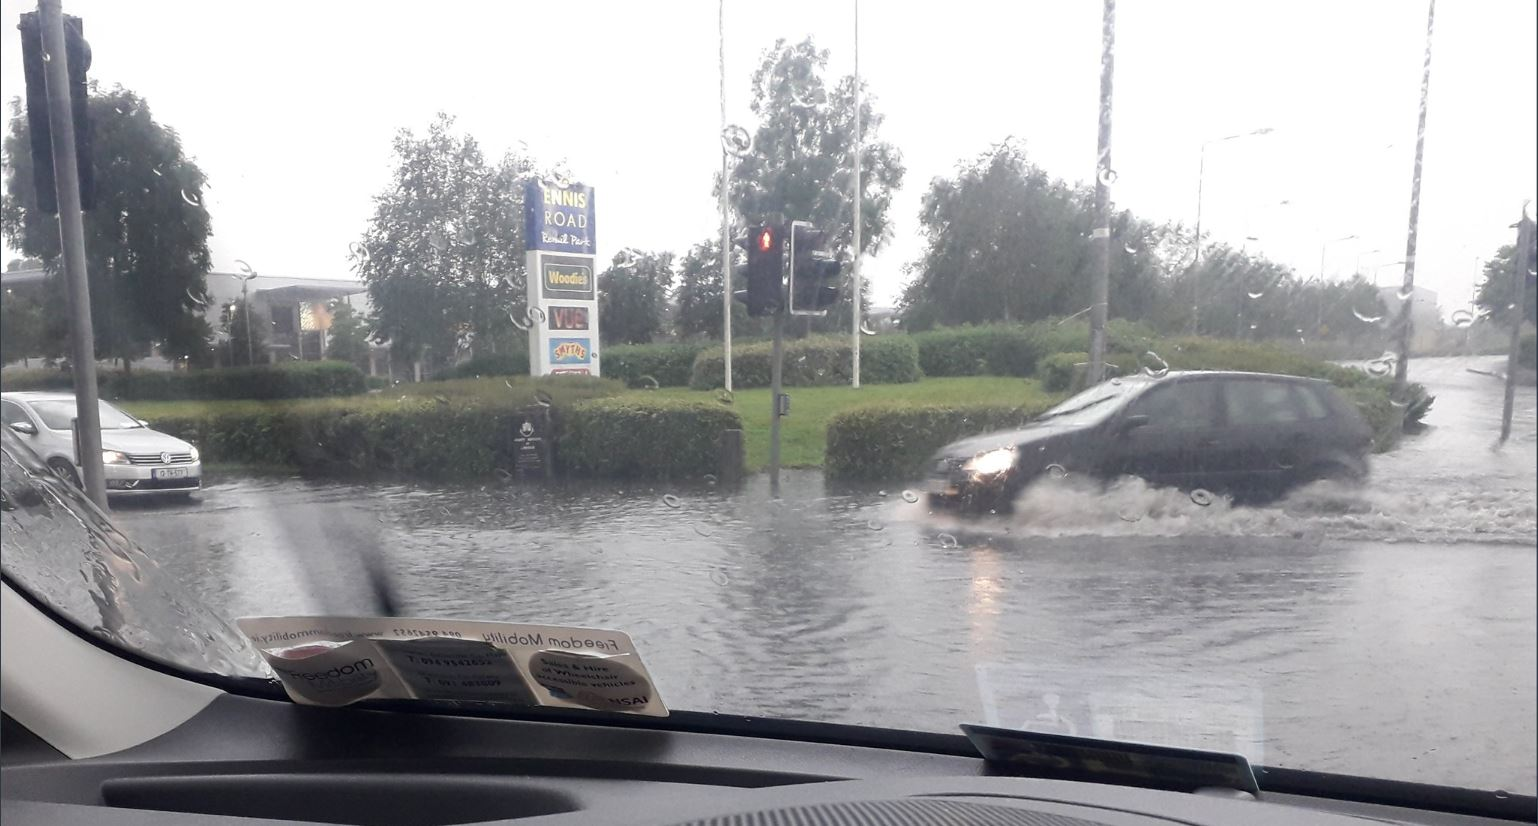 Image sent in by member of the public shows flooding outside the Ennis Road retail park